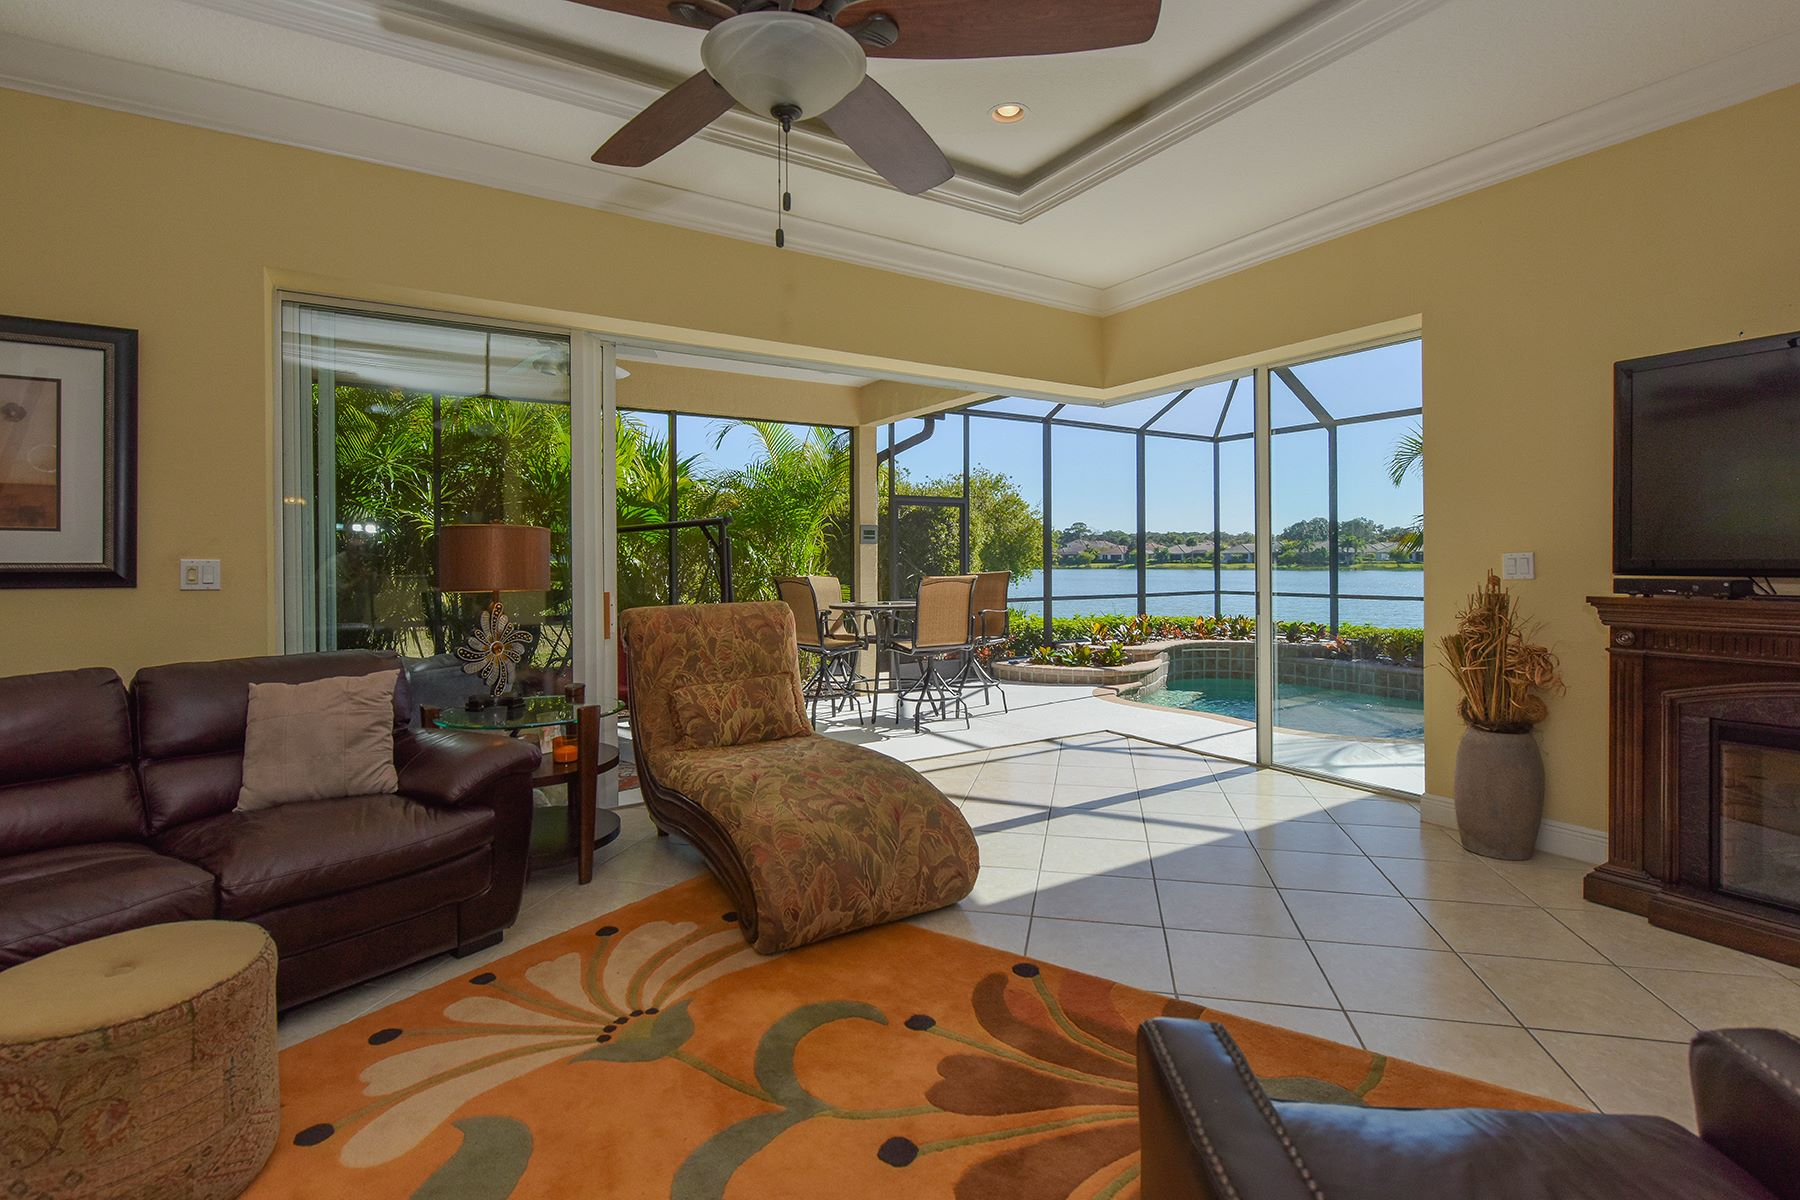 Single Family Home for Sale at WILLOWBEND 553 Crane Prairie Way Osprey, Florida, 34229 United States